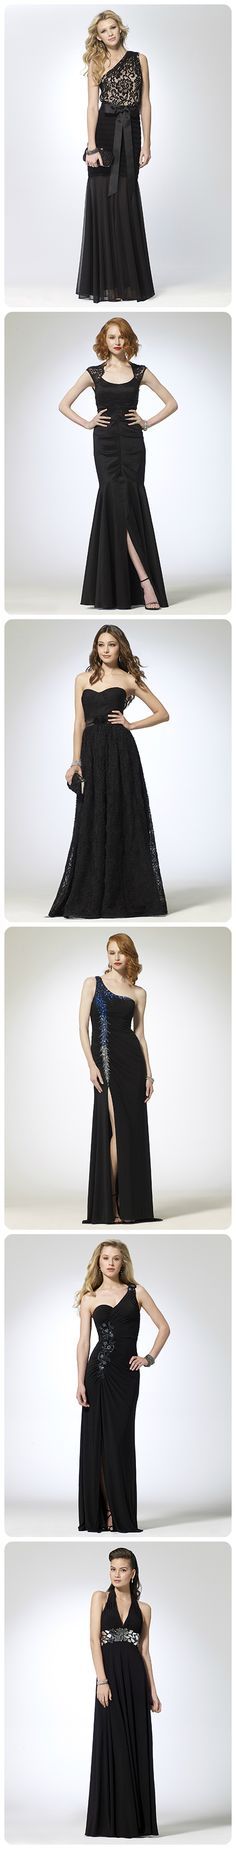 Caché prom gowns: Black Lo I like the second one down its so classy